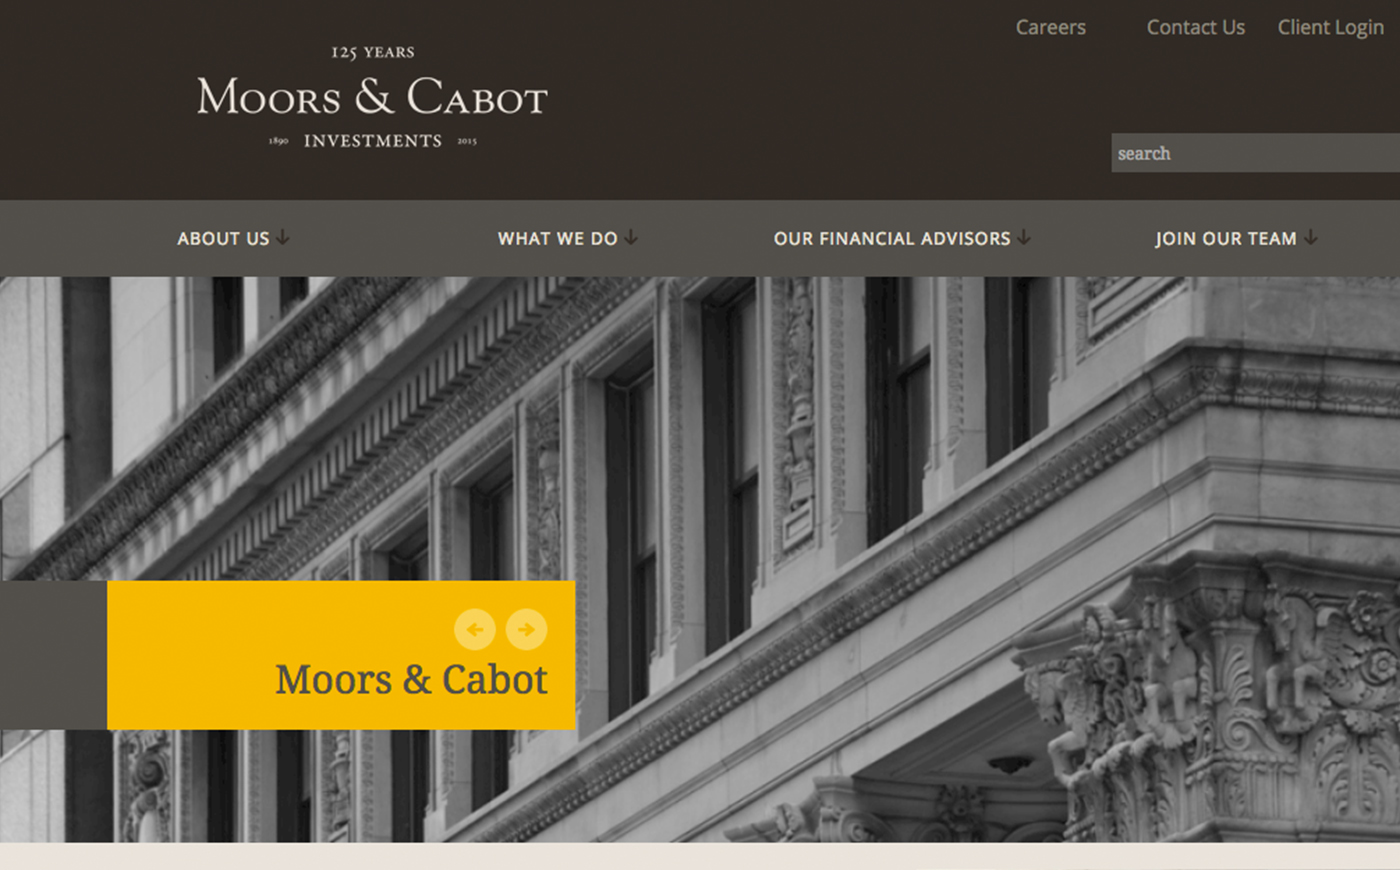 Moors & Cabot